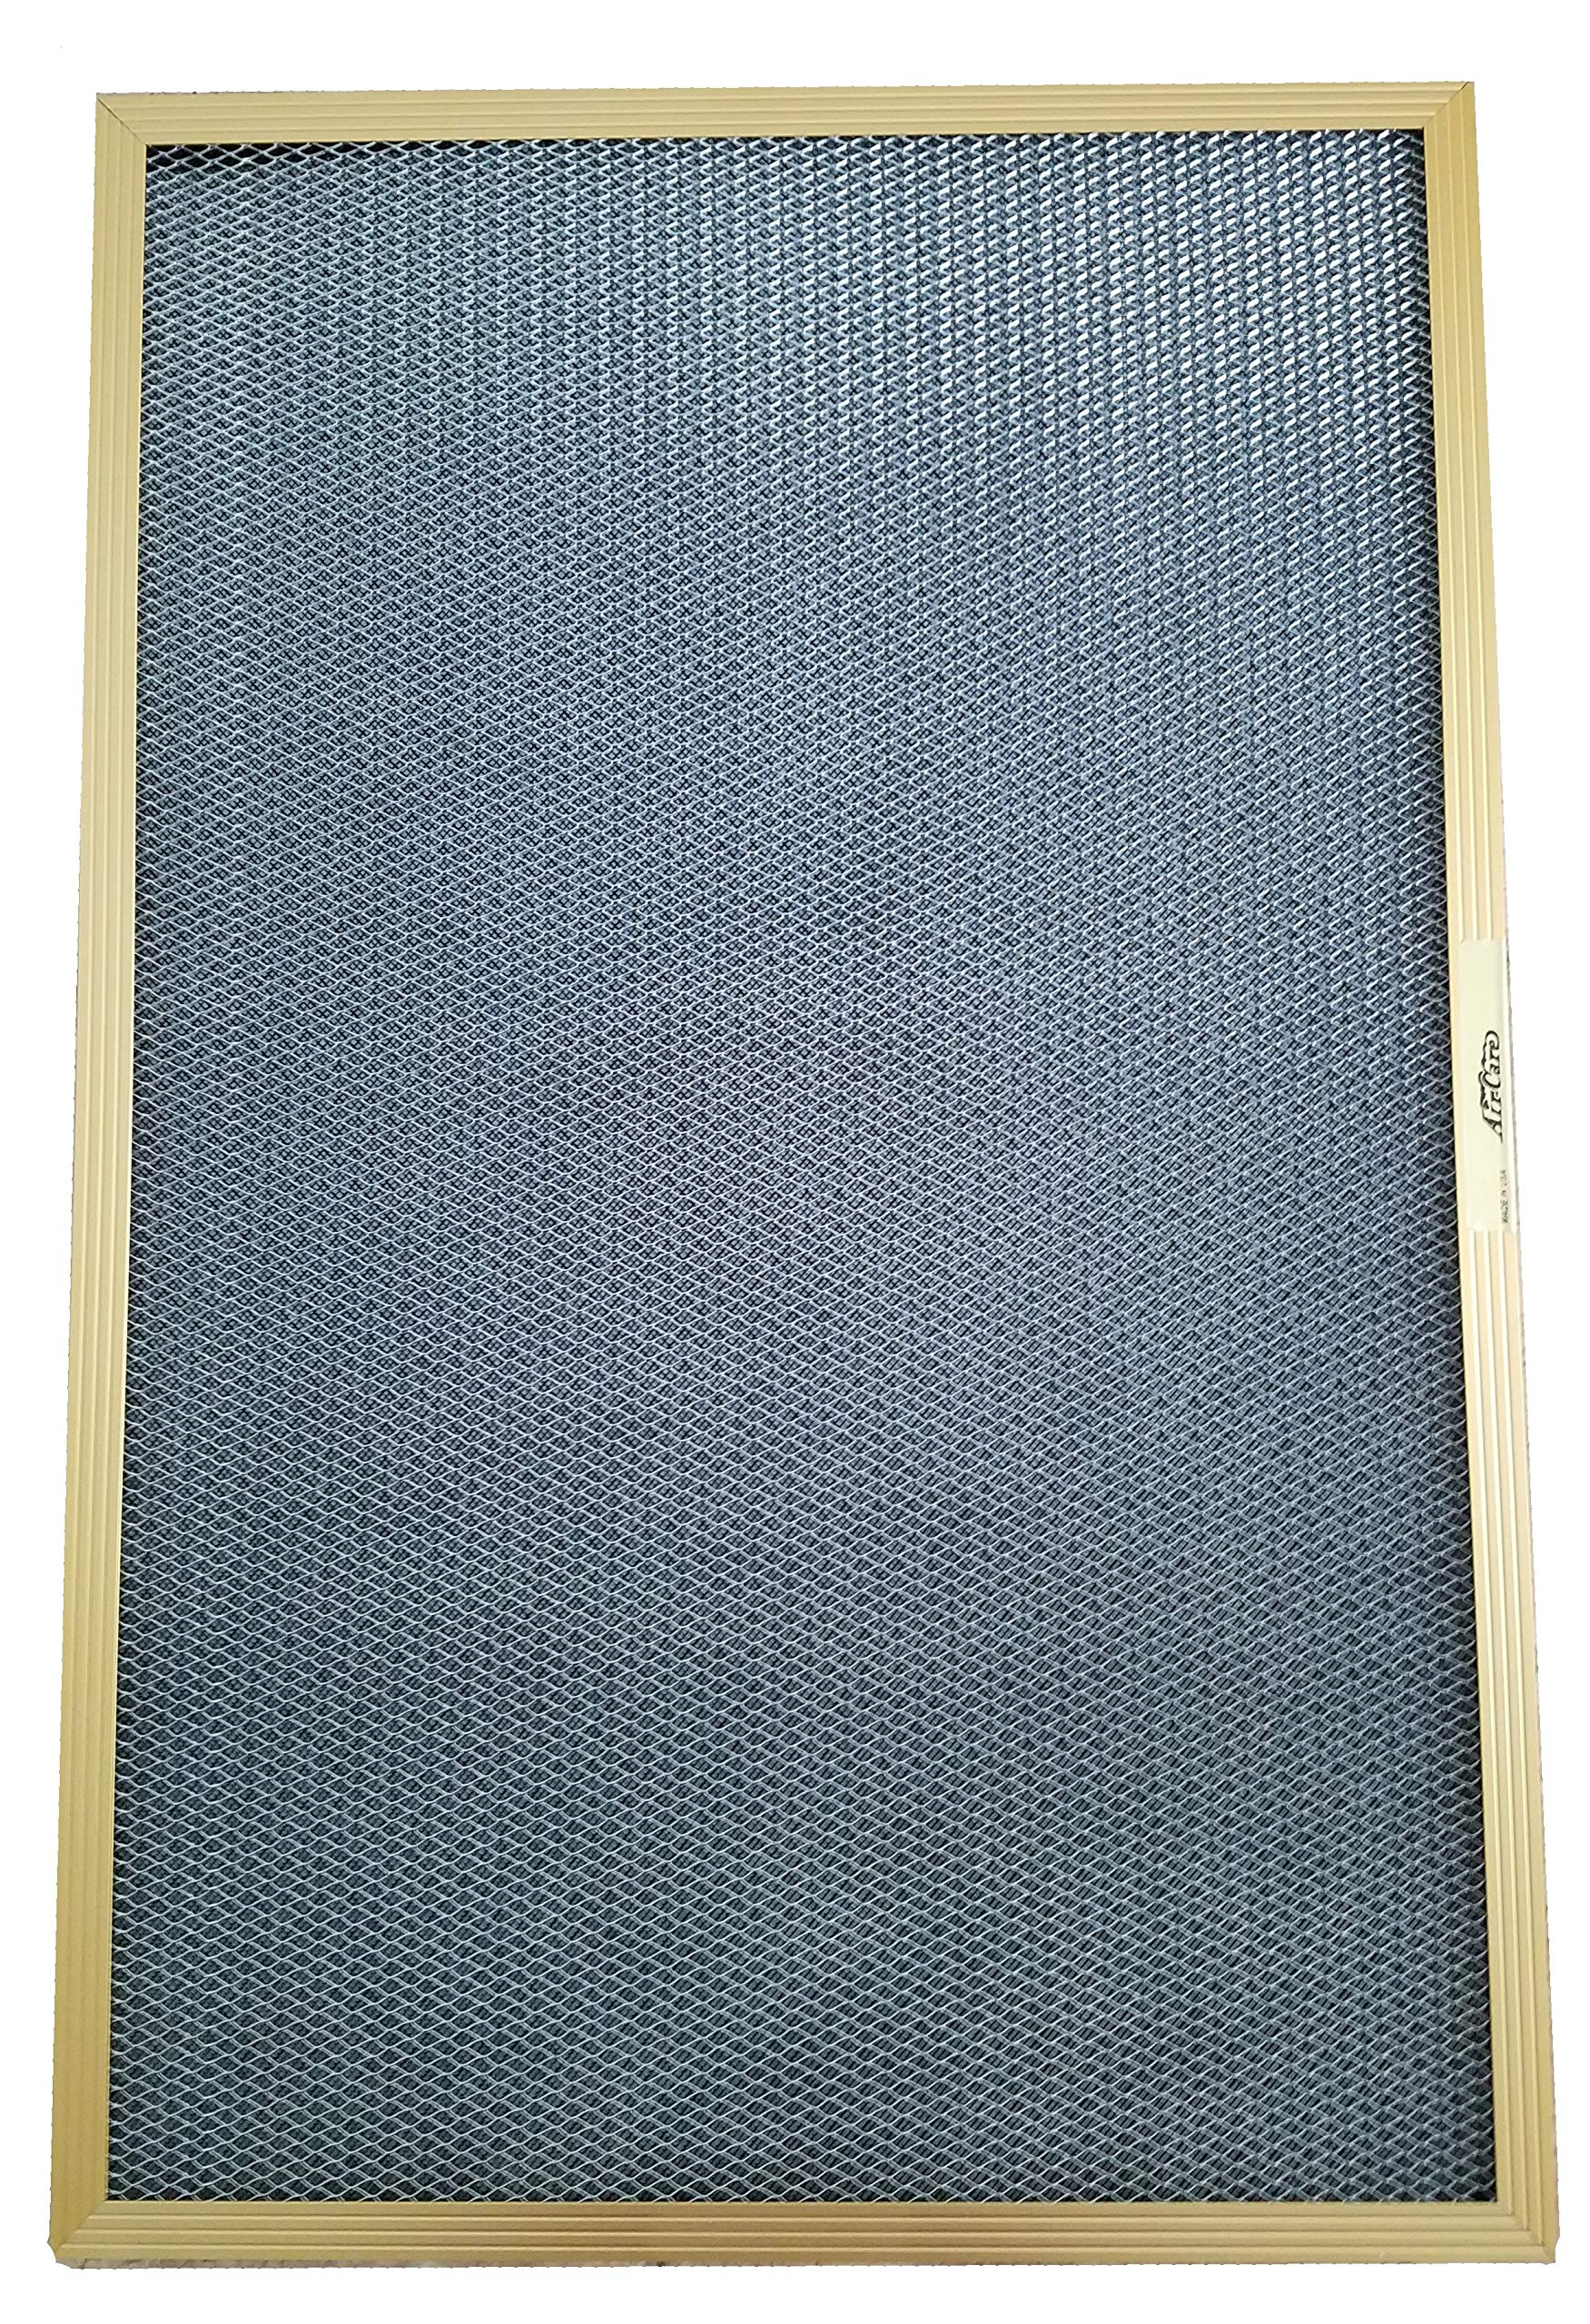 18x25x1 Electrostatic Washable Permanent A/C Furnace Air Filter - Reusable - GOLD FRAME